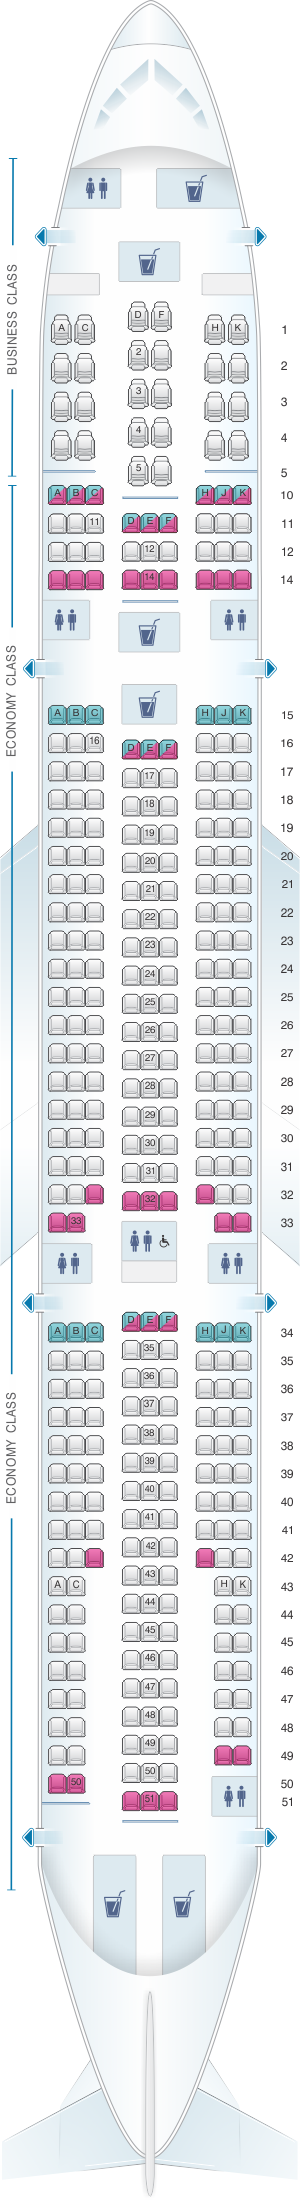 boeing 747 400 seating